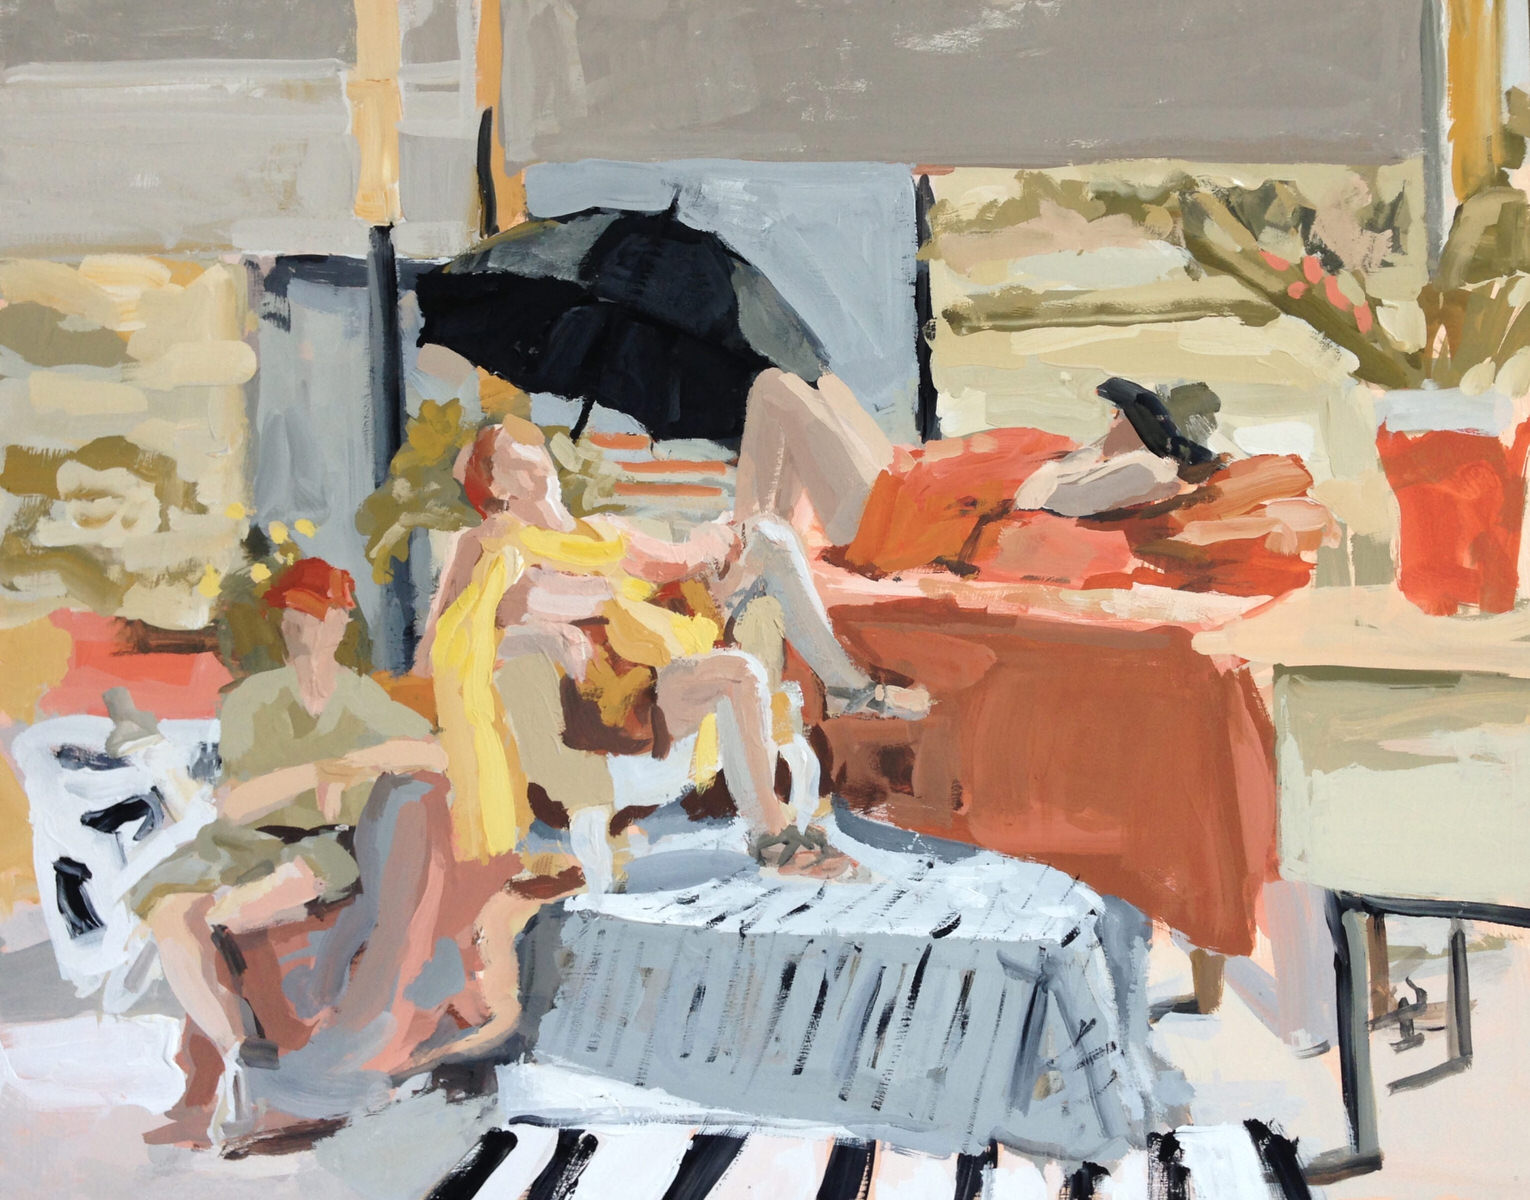 """Concord Art Members Juried 1 Show - """"Lazy Summer in the Studio"""" Juror's Prize  Juried by Joanna Fink, Alpha Gallery, Boston MA, May, 2017  """"This painting is enlivened by the interplay of arms, legs, furniture and objects around the room. The loose brushwork lends a sense of spontaneity to this posed scene. The composition is balanced by the strategic placement of certain colors. It all ties together successfully."""""""